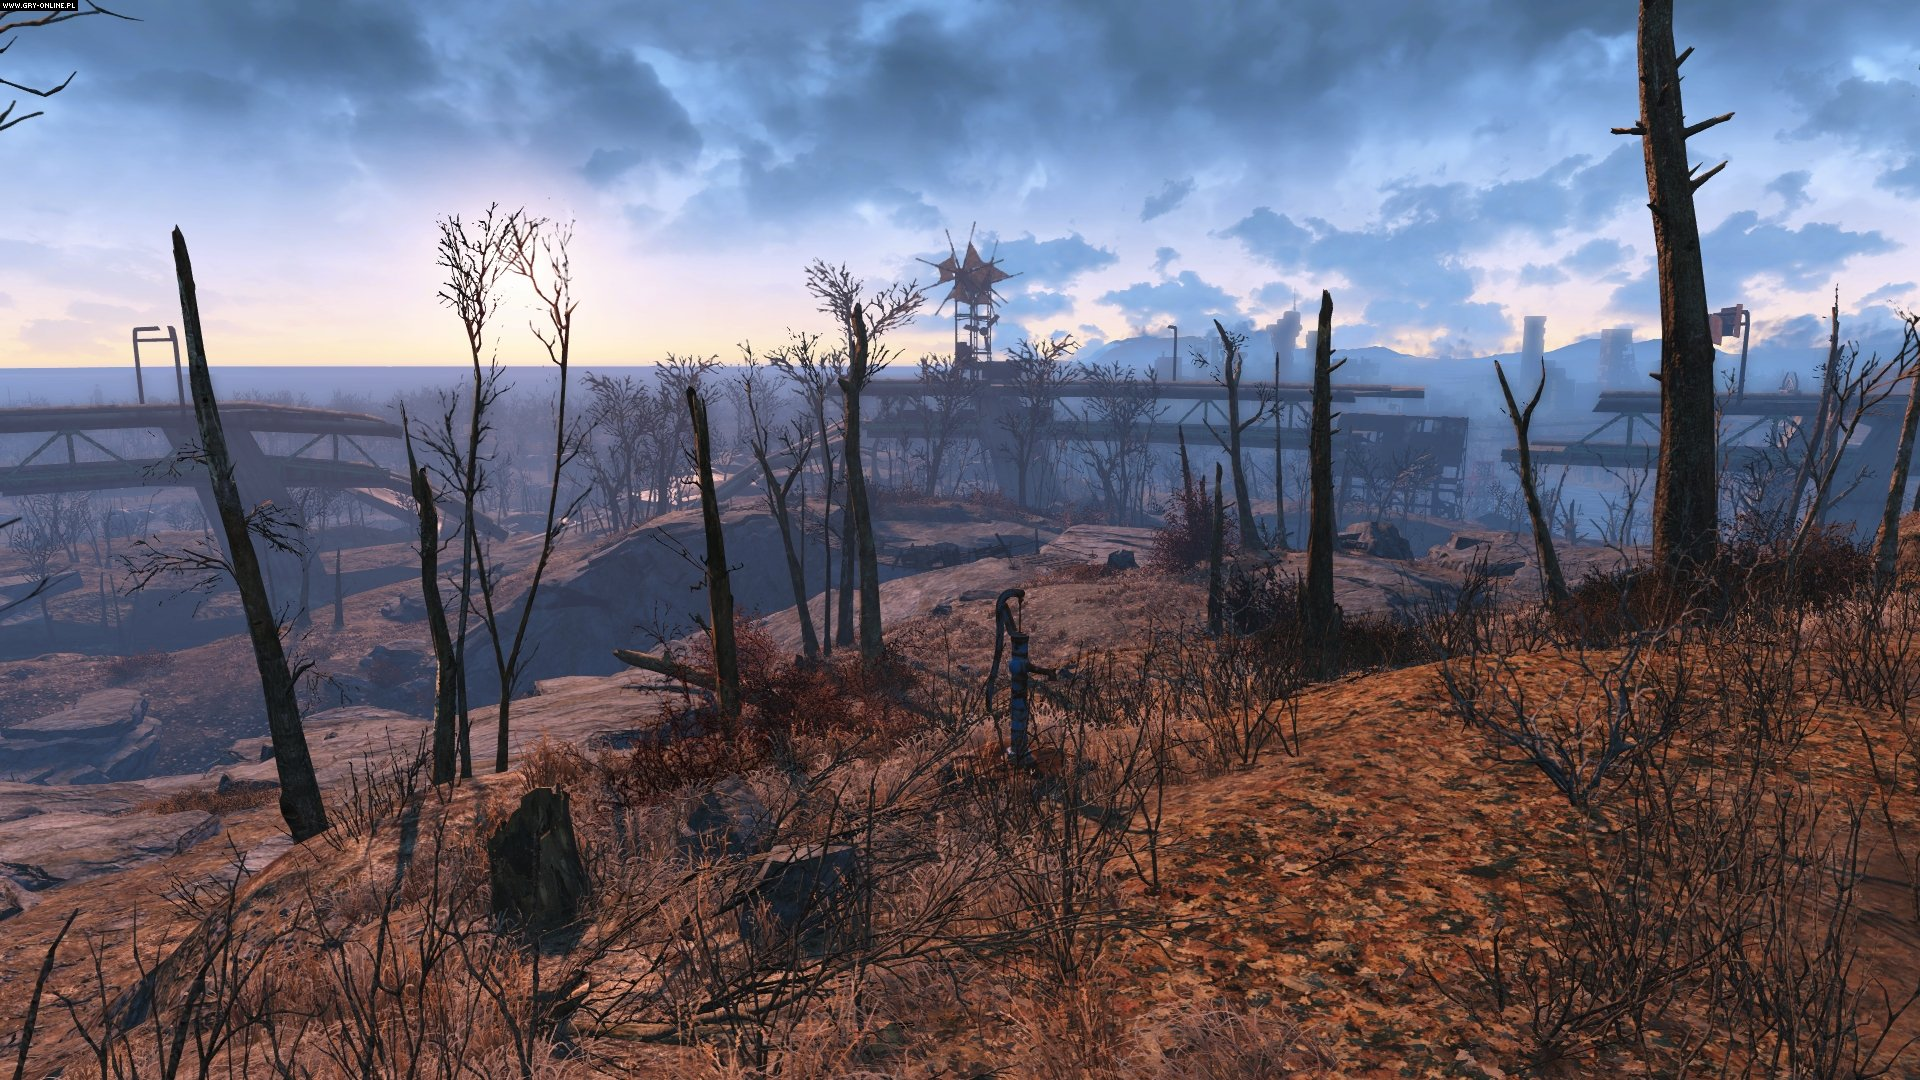 Fallout 4 PC Games Image 30/109, Bethesda Softworks